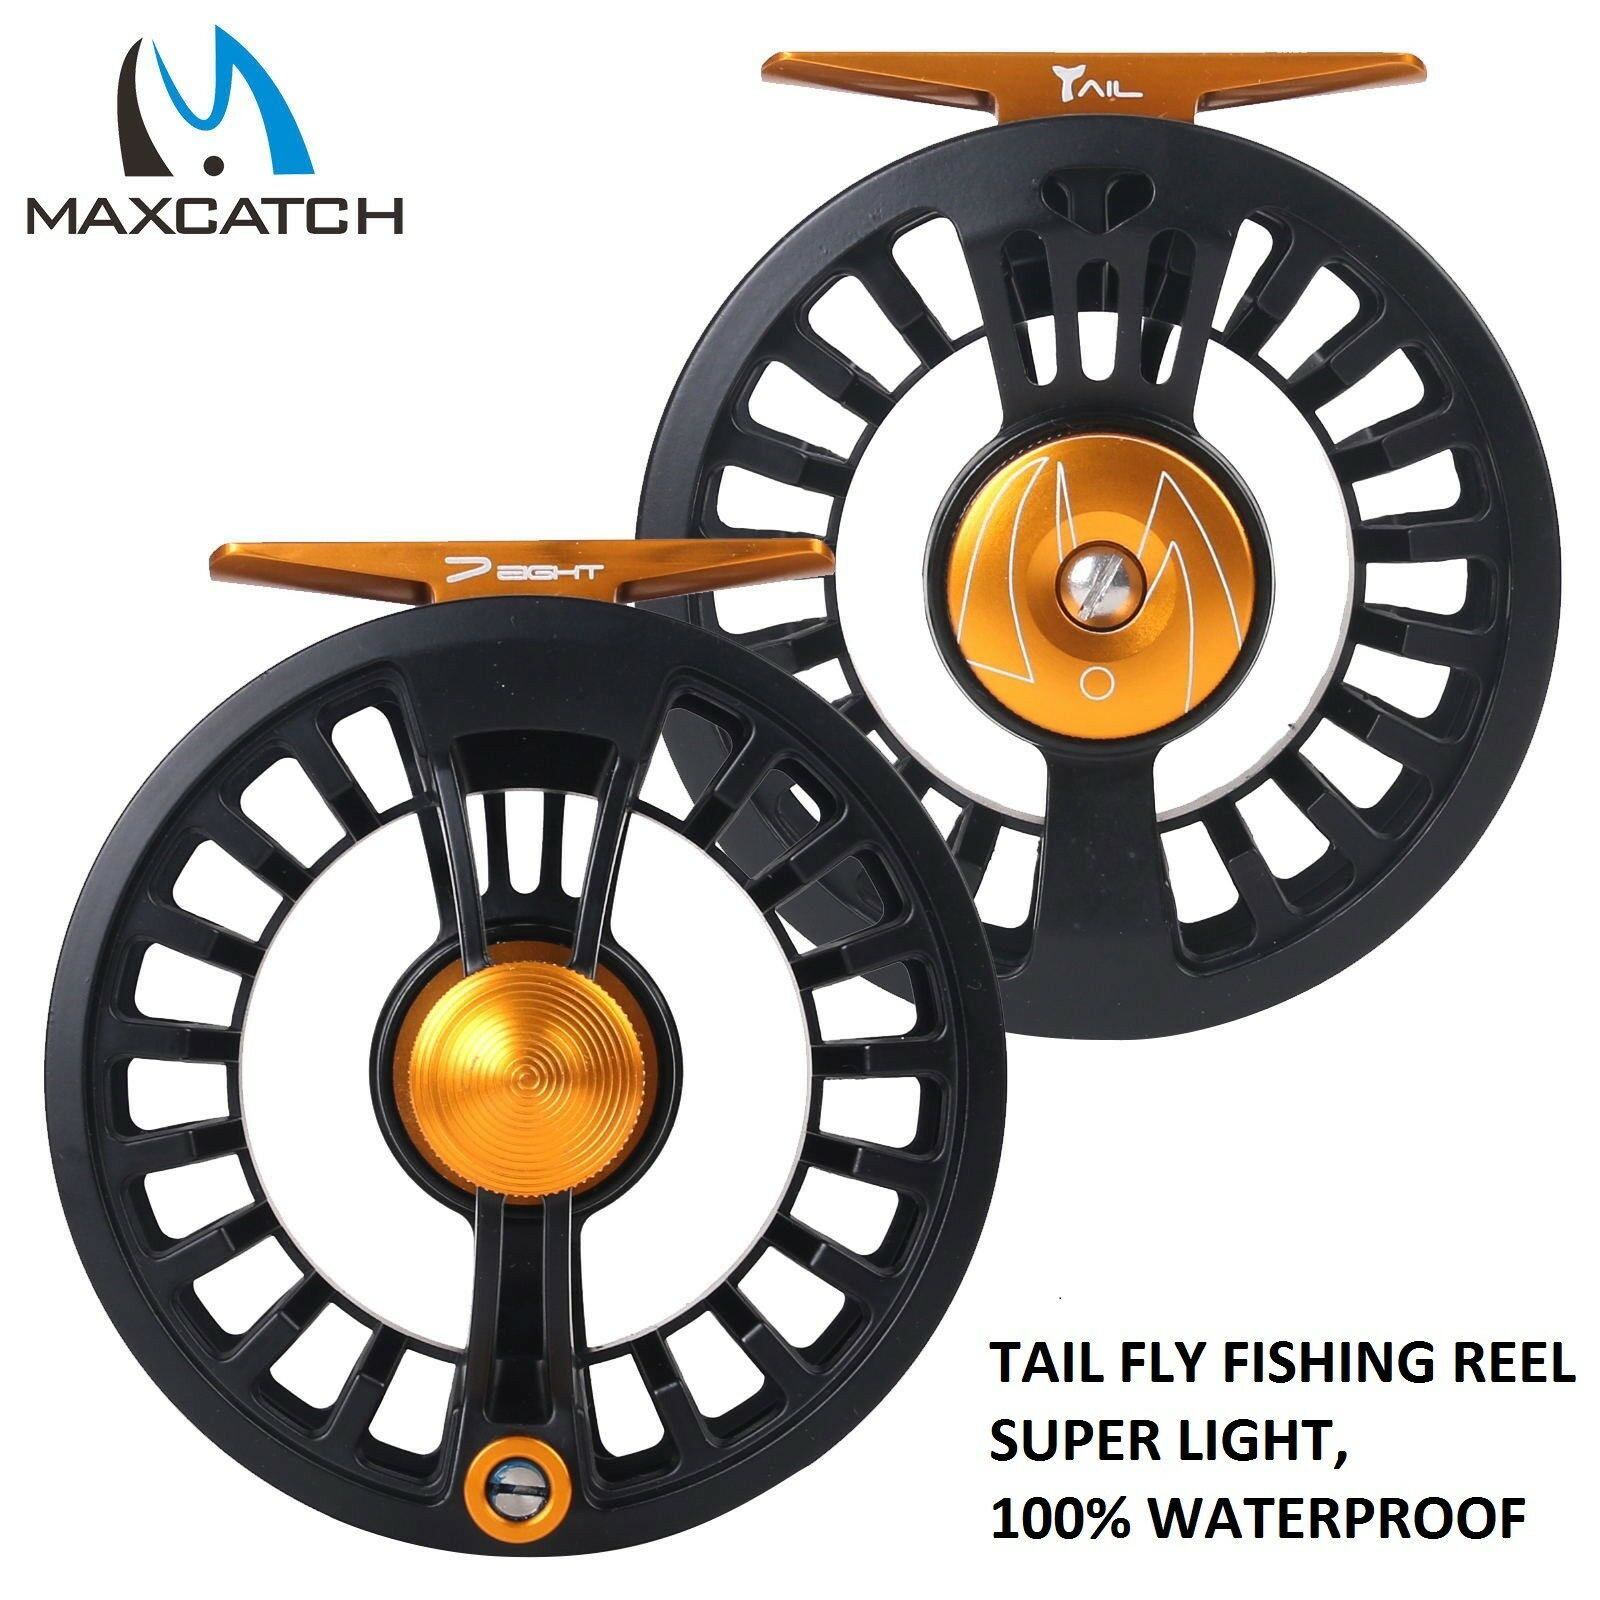 Maxcatch Tail Fly Reel  5 6 7 8wt Large Arbor 100% waterproof super and light